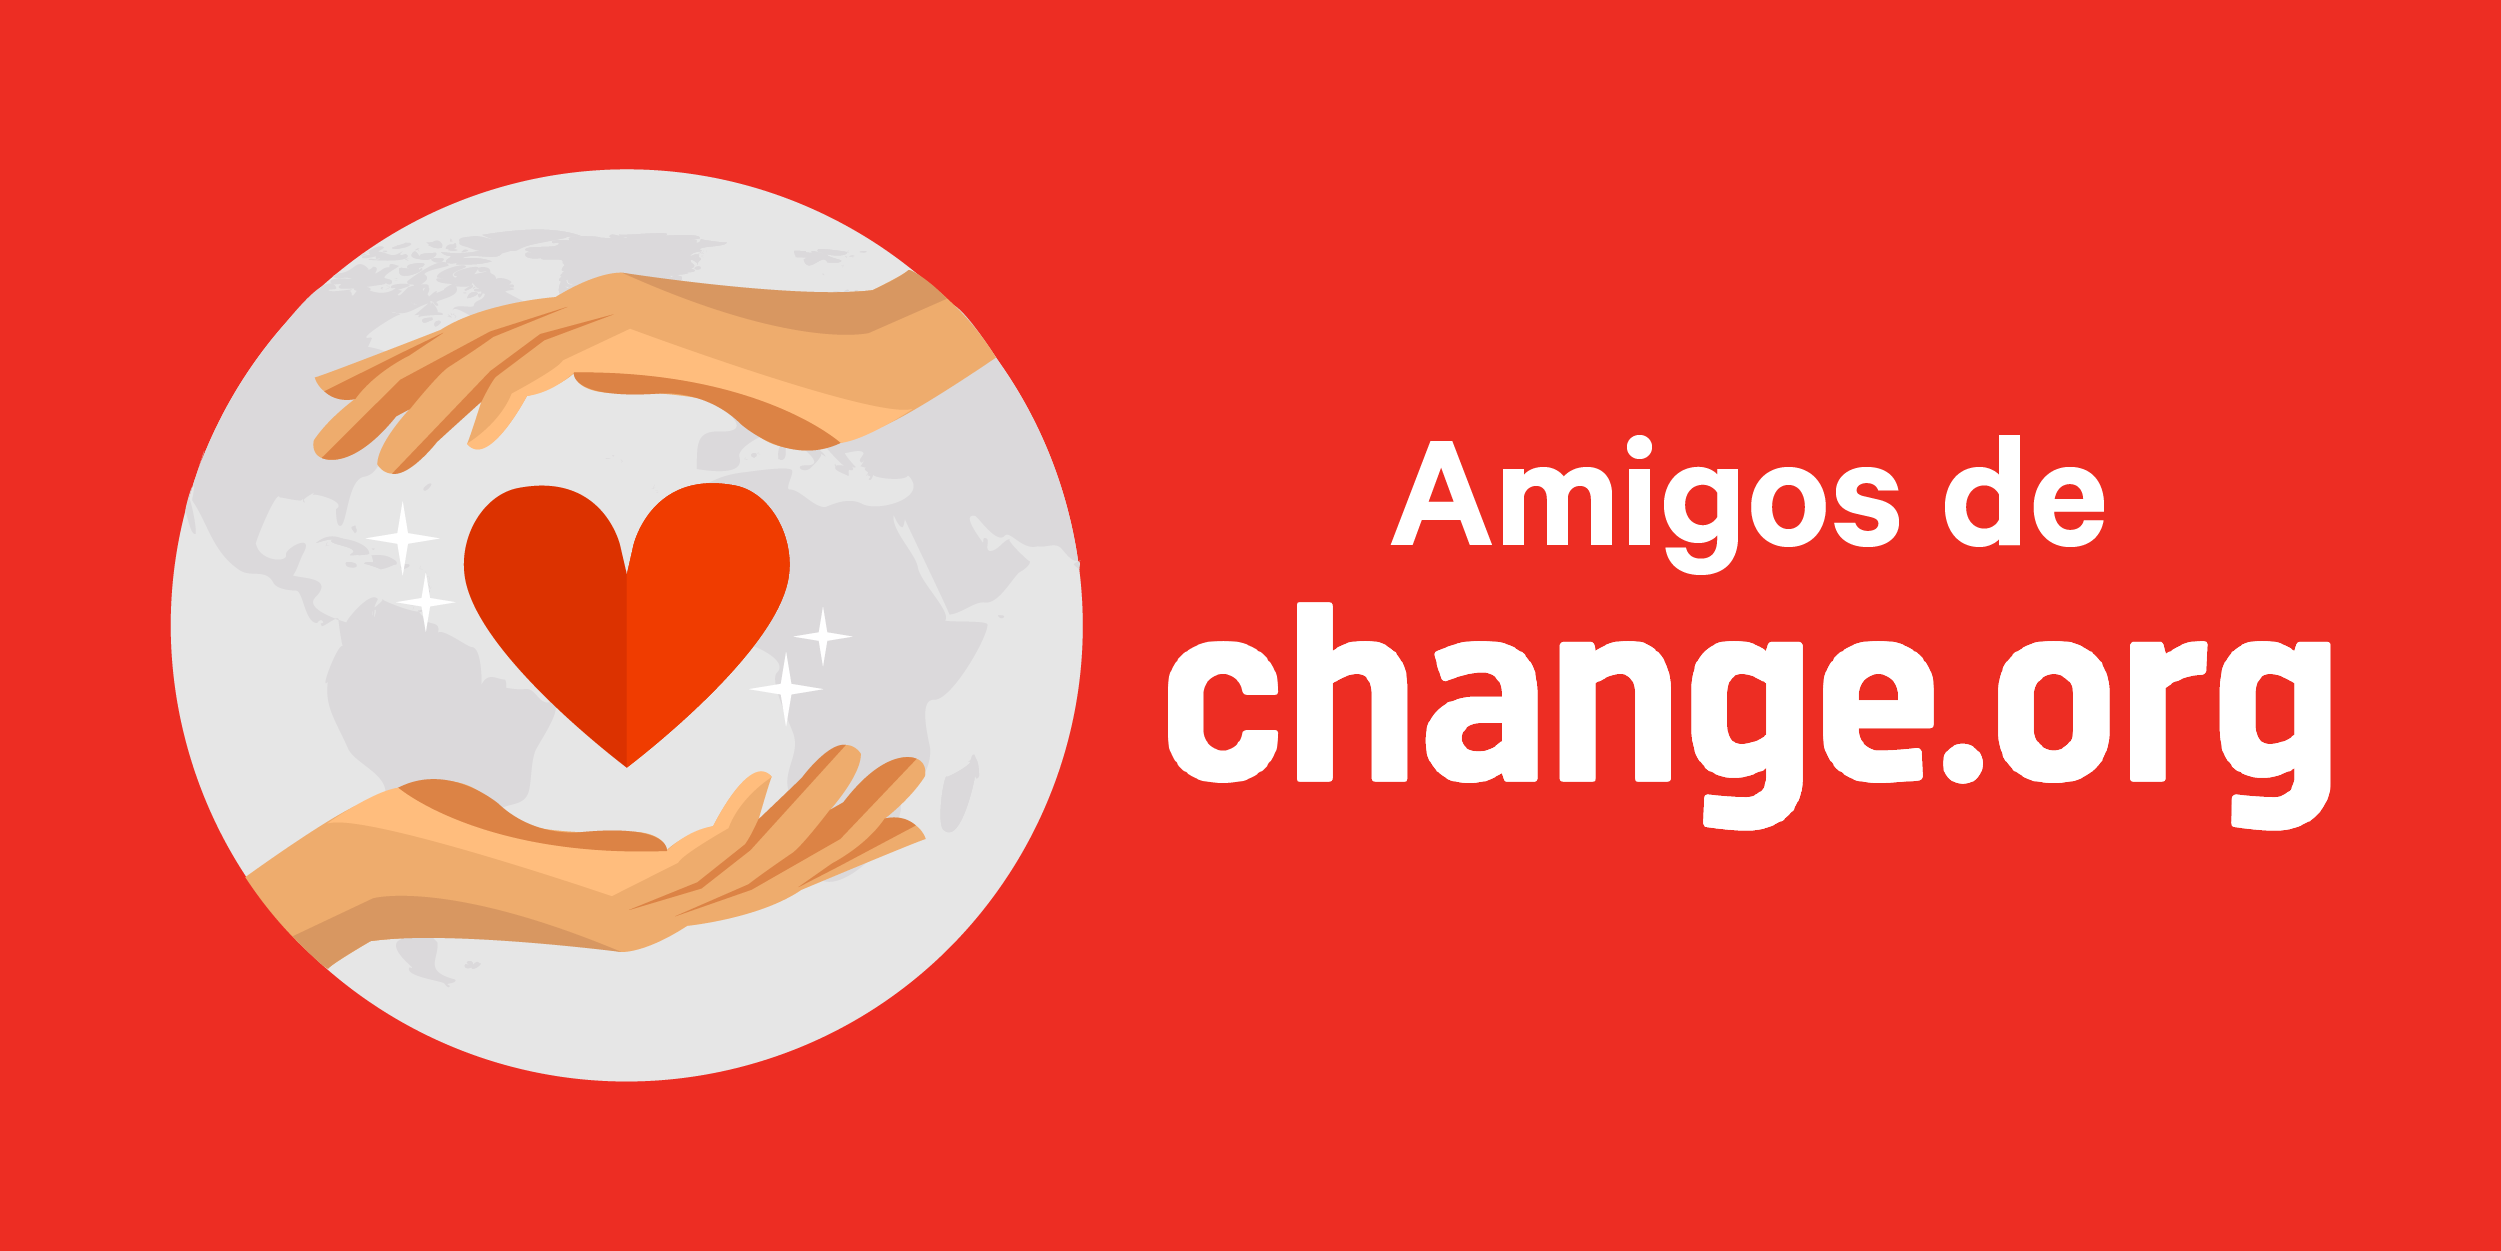 Amigos change.org Co